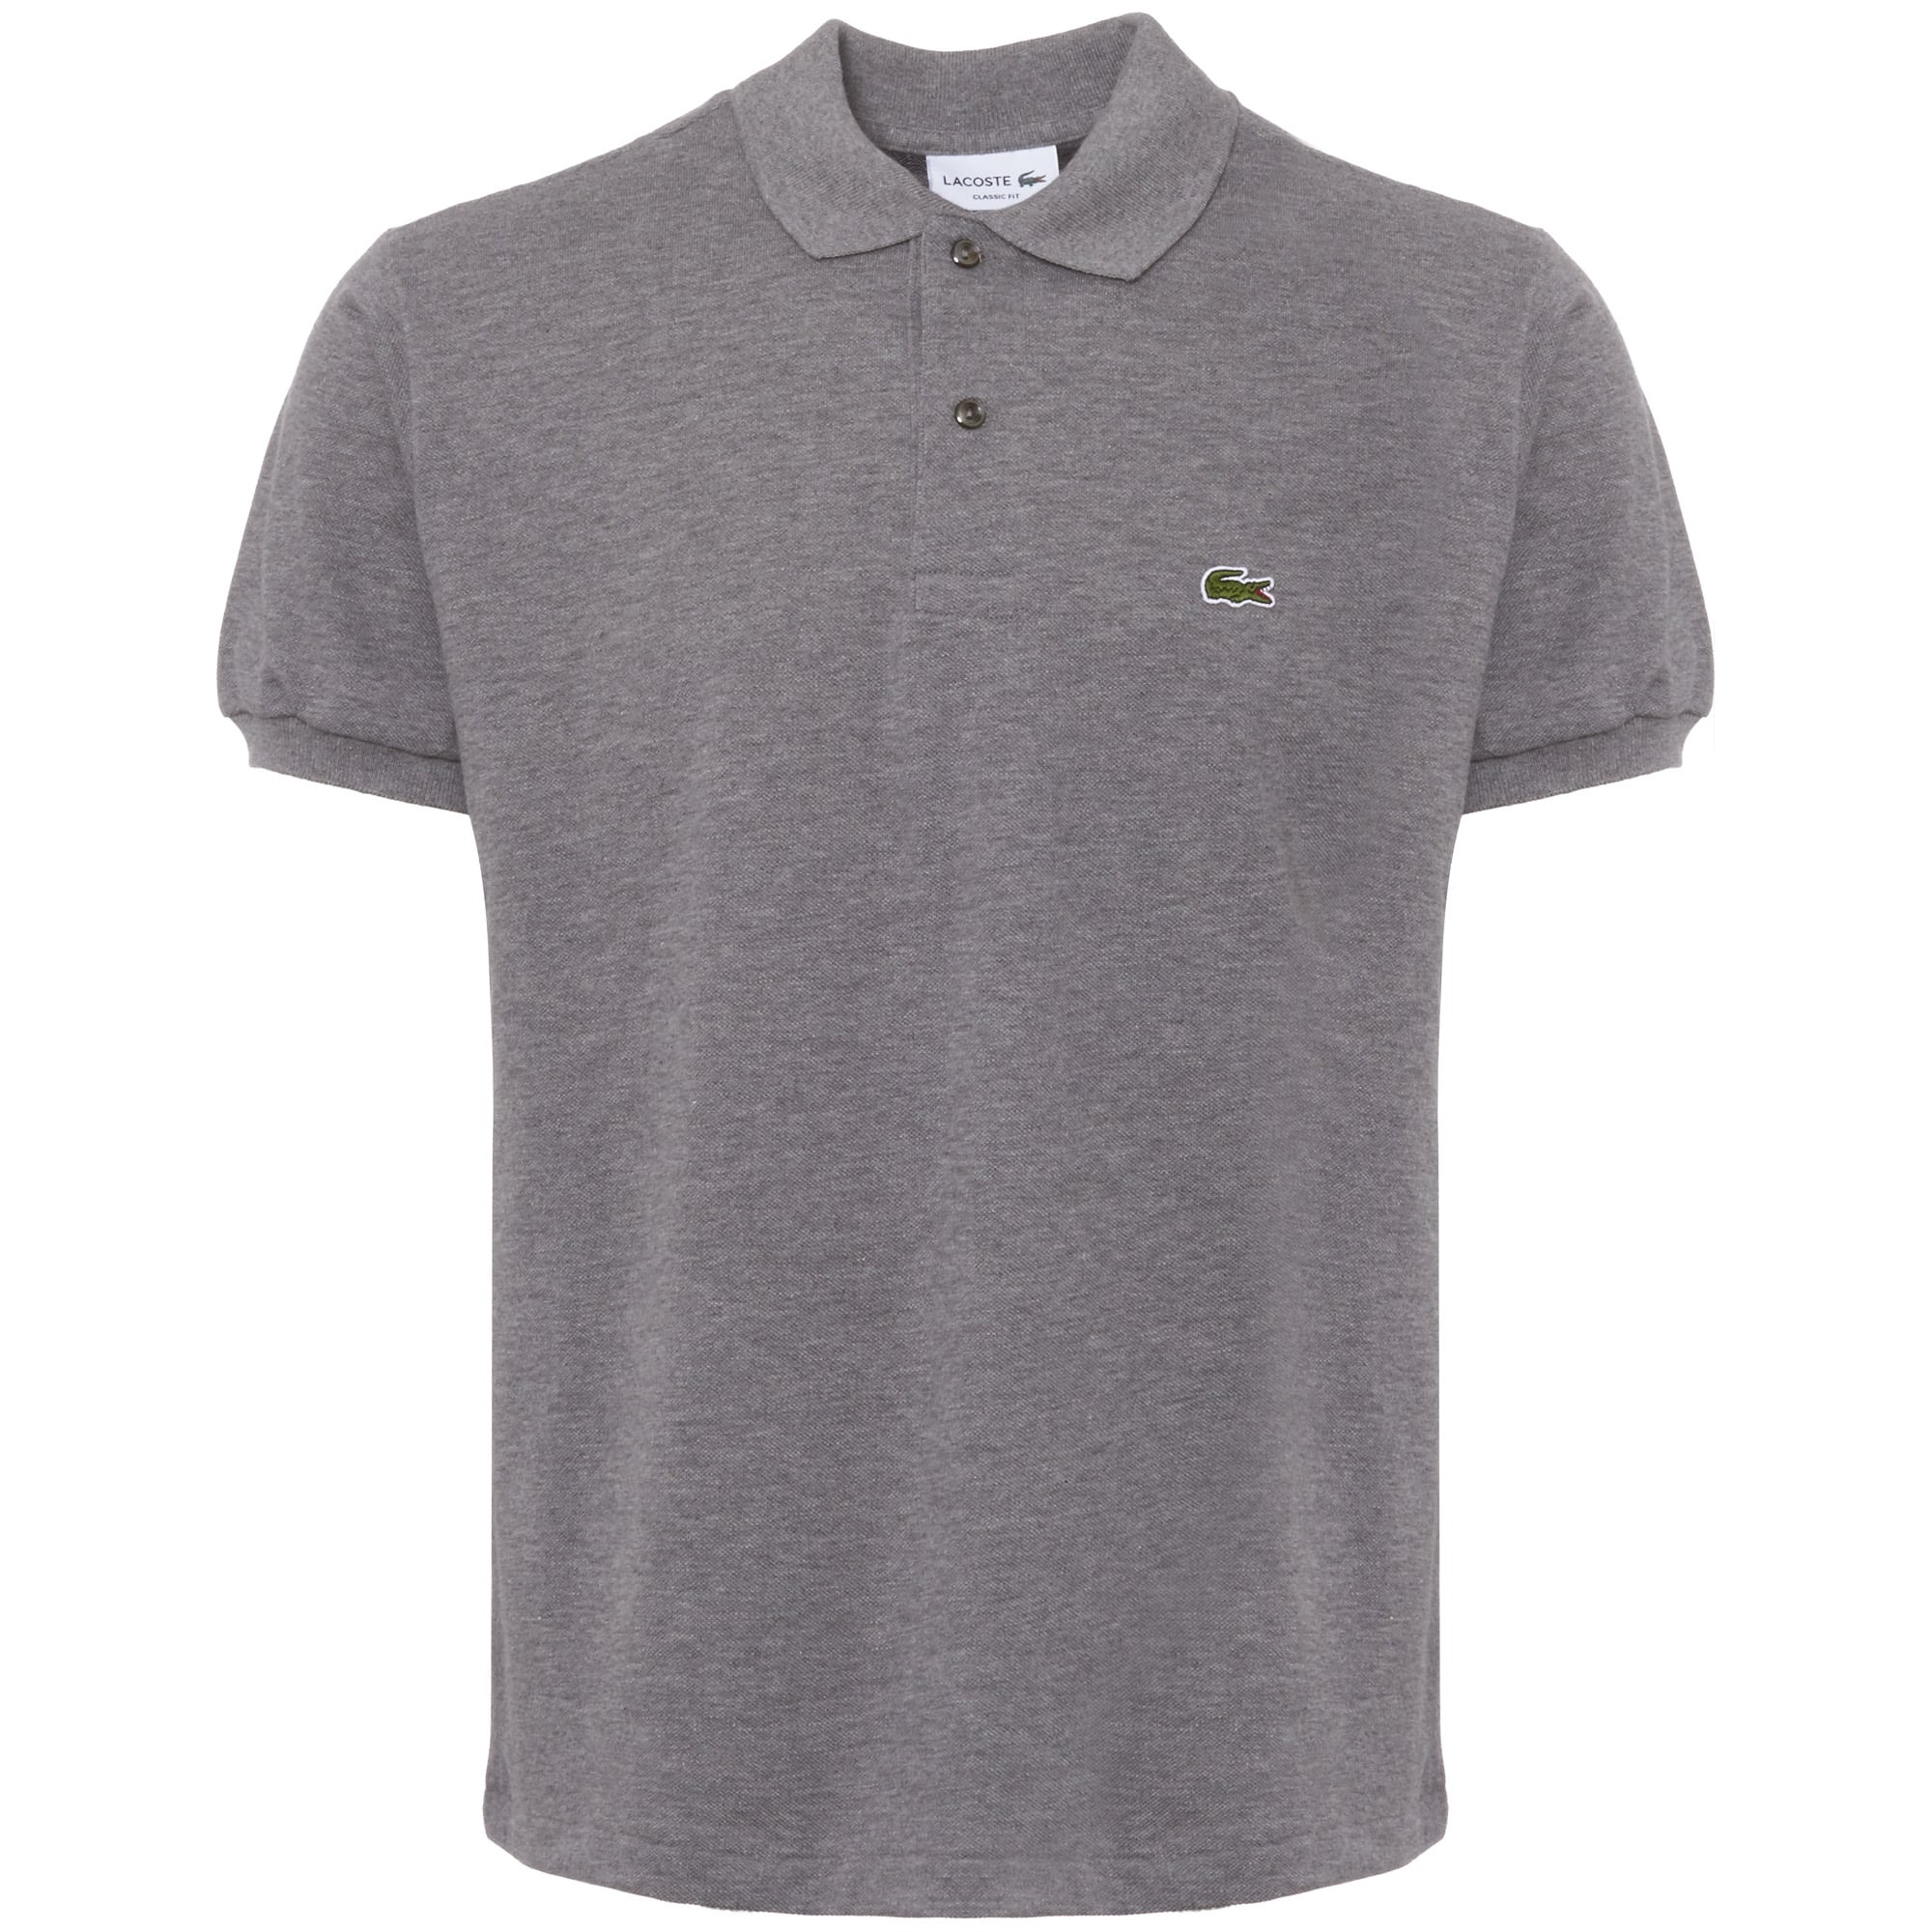 be747d28f Lacoste Pique SS Polo Shirt L1264 00 SVY